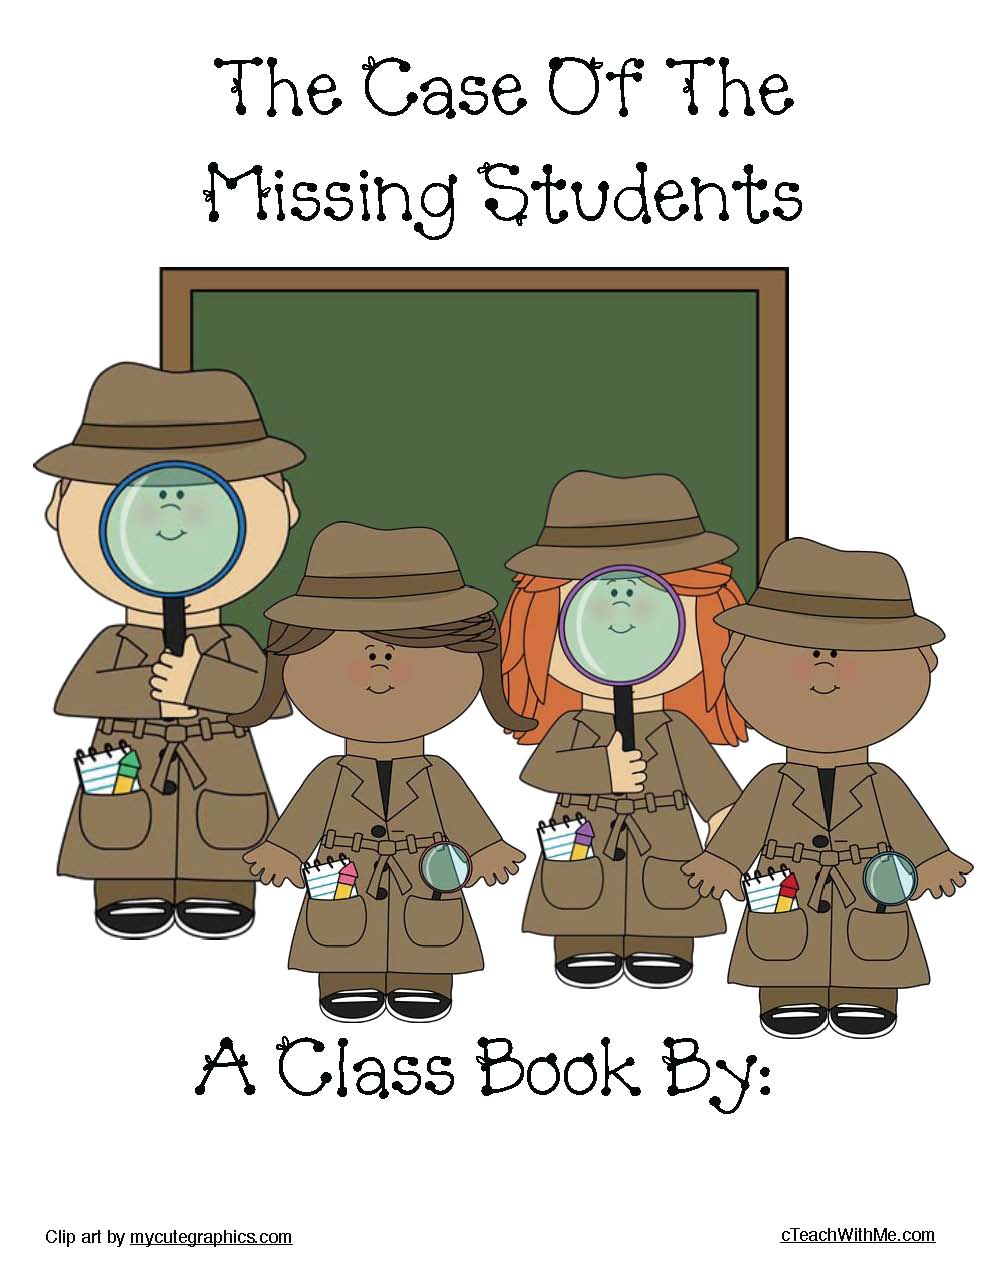 miss nelson, miss viola swamp, miss nelson is missing, activities for miss nelson is missing, venn diagrams, venn diagrams for miss nelson is missing, adjective activities, words to describe miss nelson, words to describe viola swamp, graphic organizers, bookmarks for miss nelson is missing, sub folders, sub folder ideas, emergency lesson plans, wanted posters, wanted poster activities, wanted poster template, wanted poster pattern, missing person poster, missing person poster template, class made books, writing activities for back to school, back to school writing activities, miss nelson is missing crafts, miss nelson is missing bulletin boards